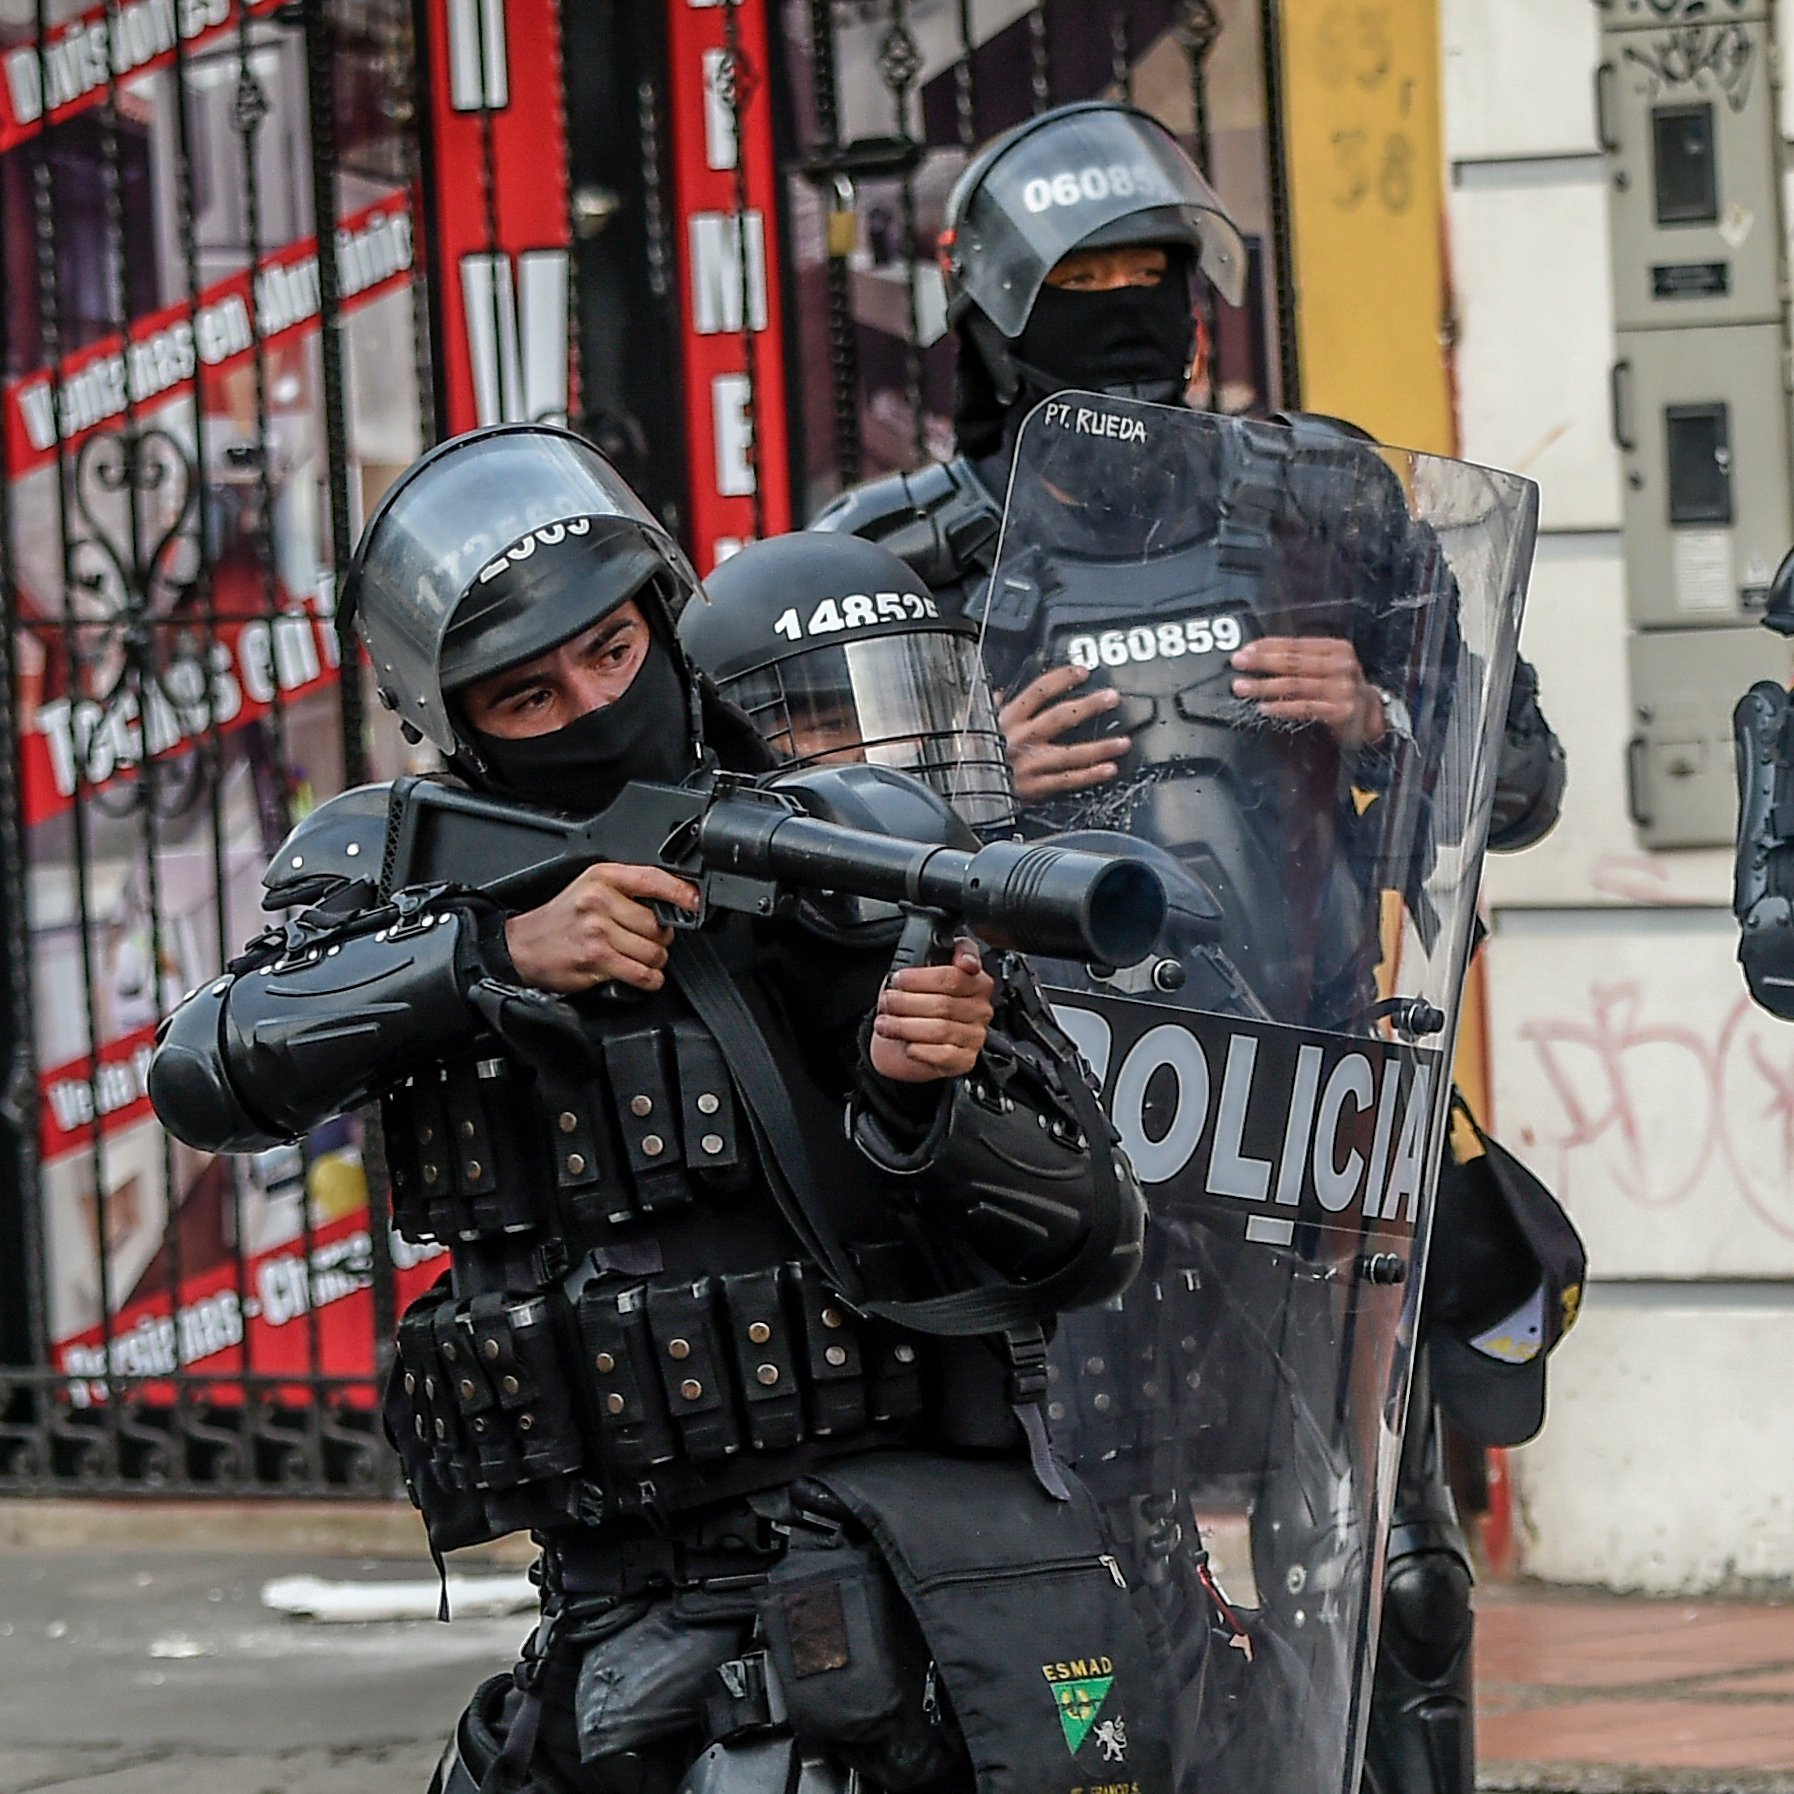 Read more about the article Full Video of the moment Columbian Lawyer Javier Ordonez, 46, was tasered at least 5 times by Police, leading to his death later in hospital (Viewer's discretion advised)